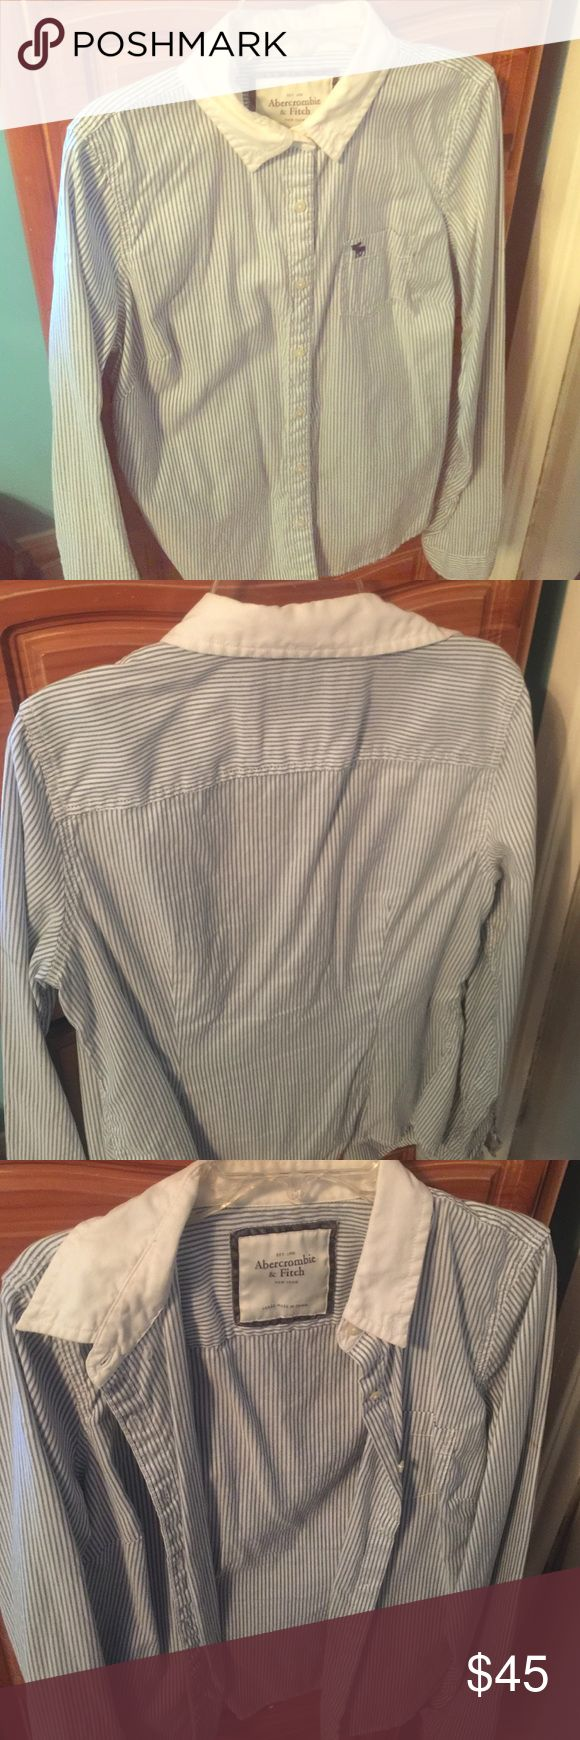 Abercrombie and Fitch Women's Striped Button-Up Large women's Abercrombie and Fitch Striped Button-Up in blue/white with white collar. It's a really nice shirt for a uniform or even work. Abercrombie & Fitch Skirts